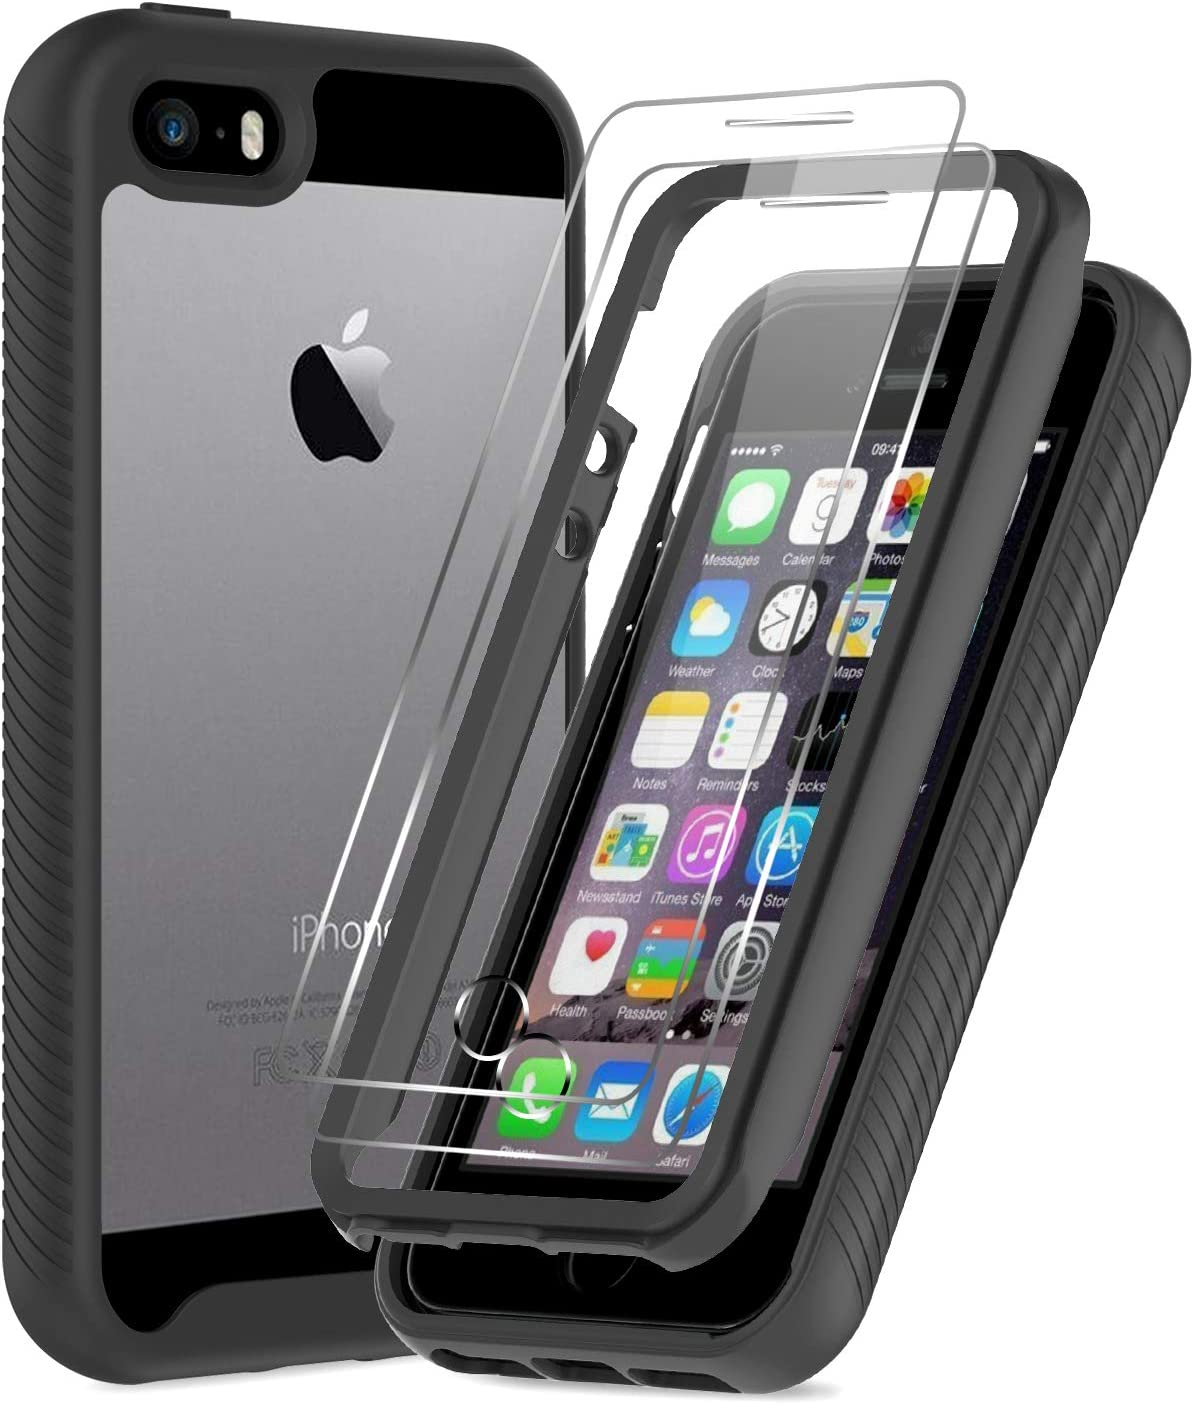 LeYi iPhone SE Case (2016), iPhone 5 Case, iPhone 5s Case with 2 Tempered Glass Screen Protector, Full-Body Shockproof Rugged Hybrid Bumper Clear Protective Phone Cover Cases for iPhone 5s/5, Black